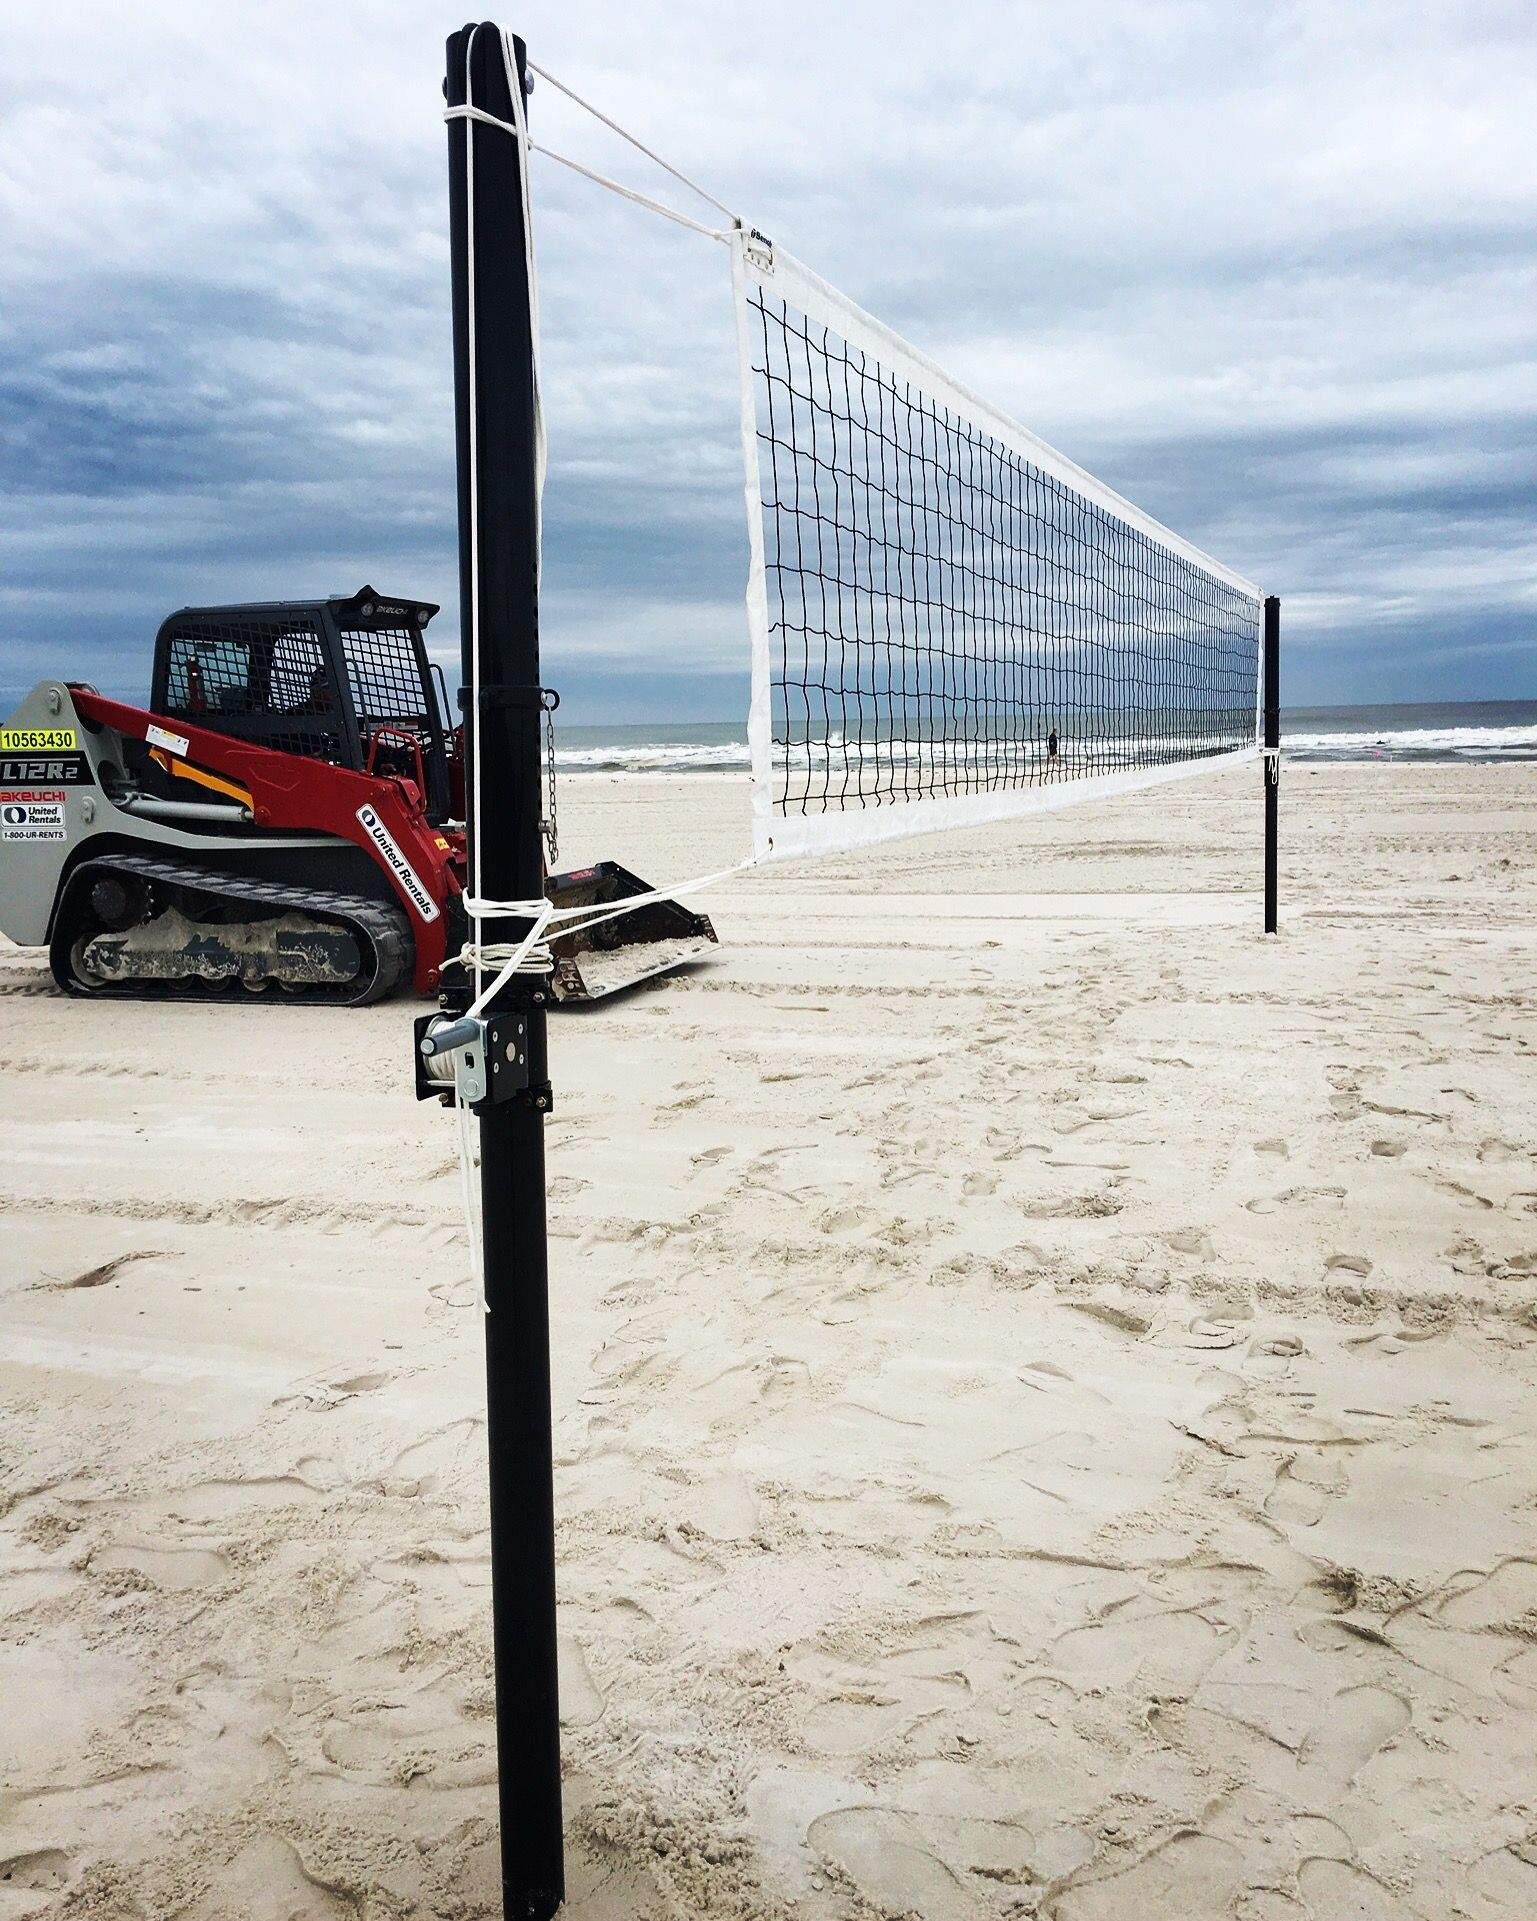 Beach Volleyball Court Set Up For The 2017 Ncaa Beach Volleyball Championship Beach Volleyball Court Volleyball Net Volleyball